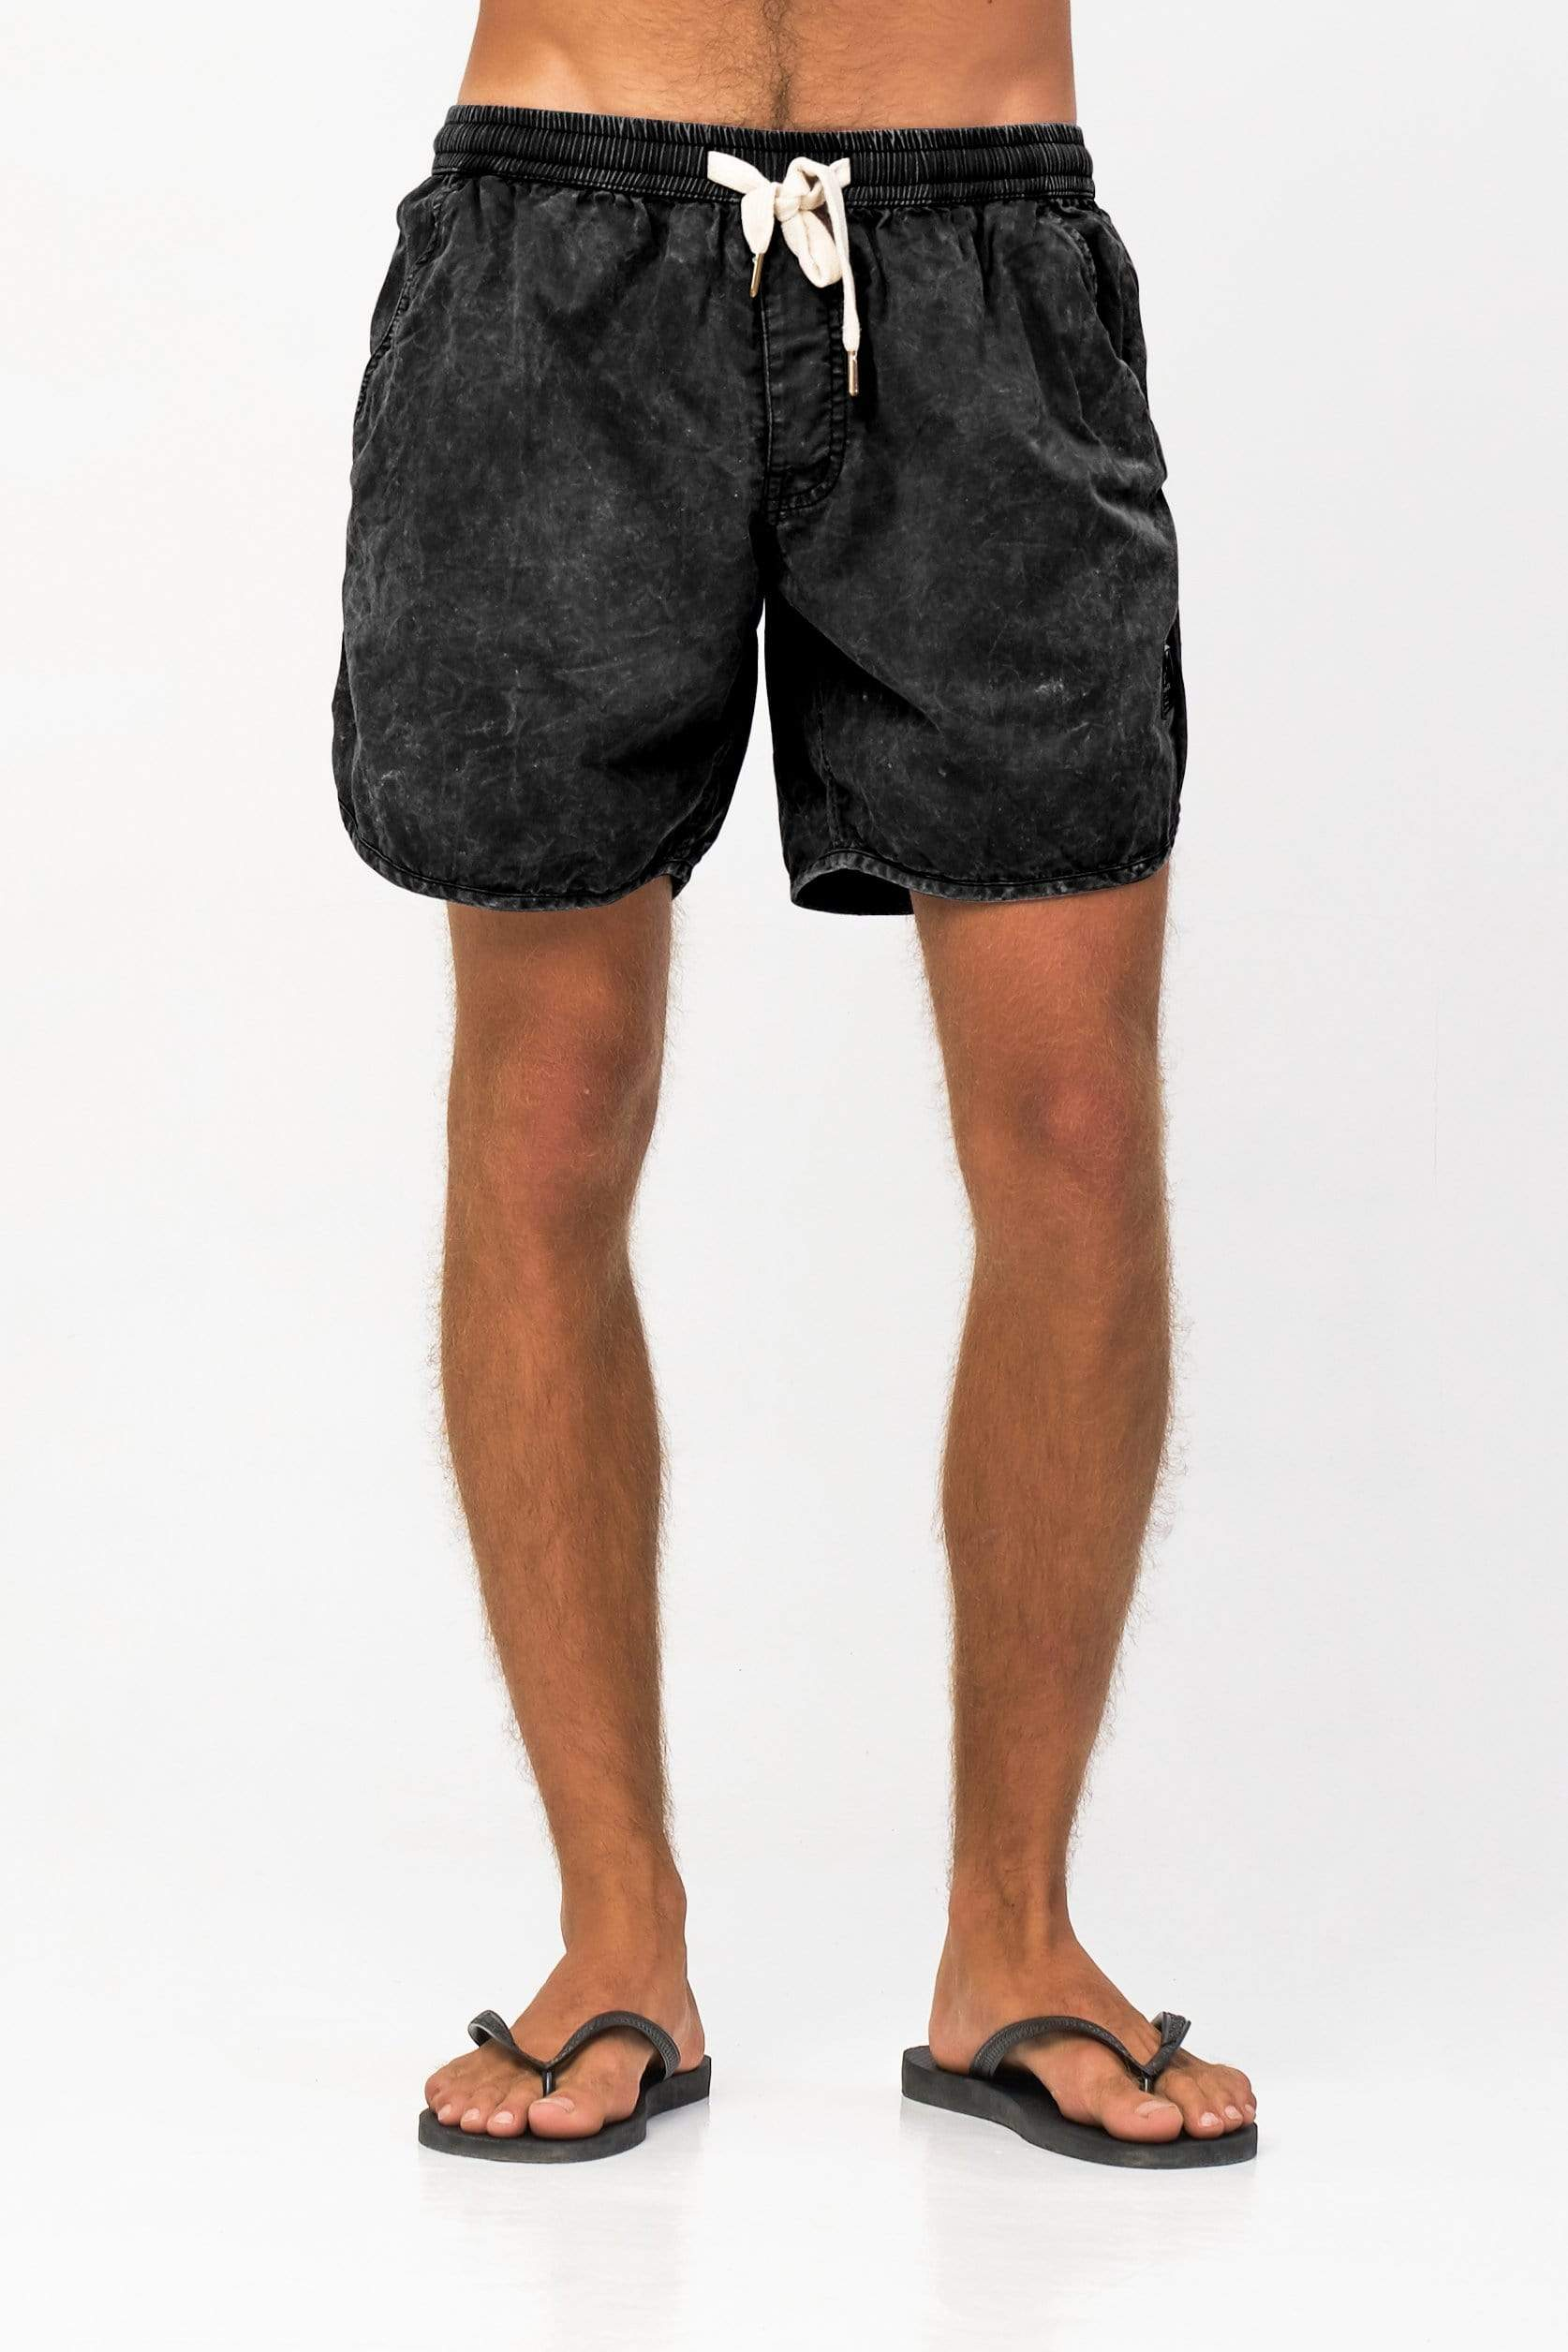 Basic Boardshort - Man Short - LOST IN PARADISE